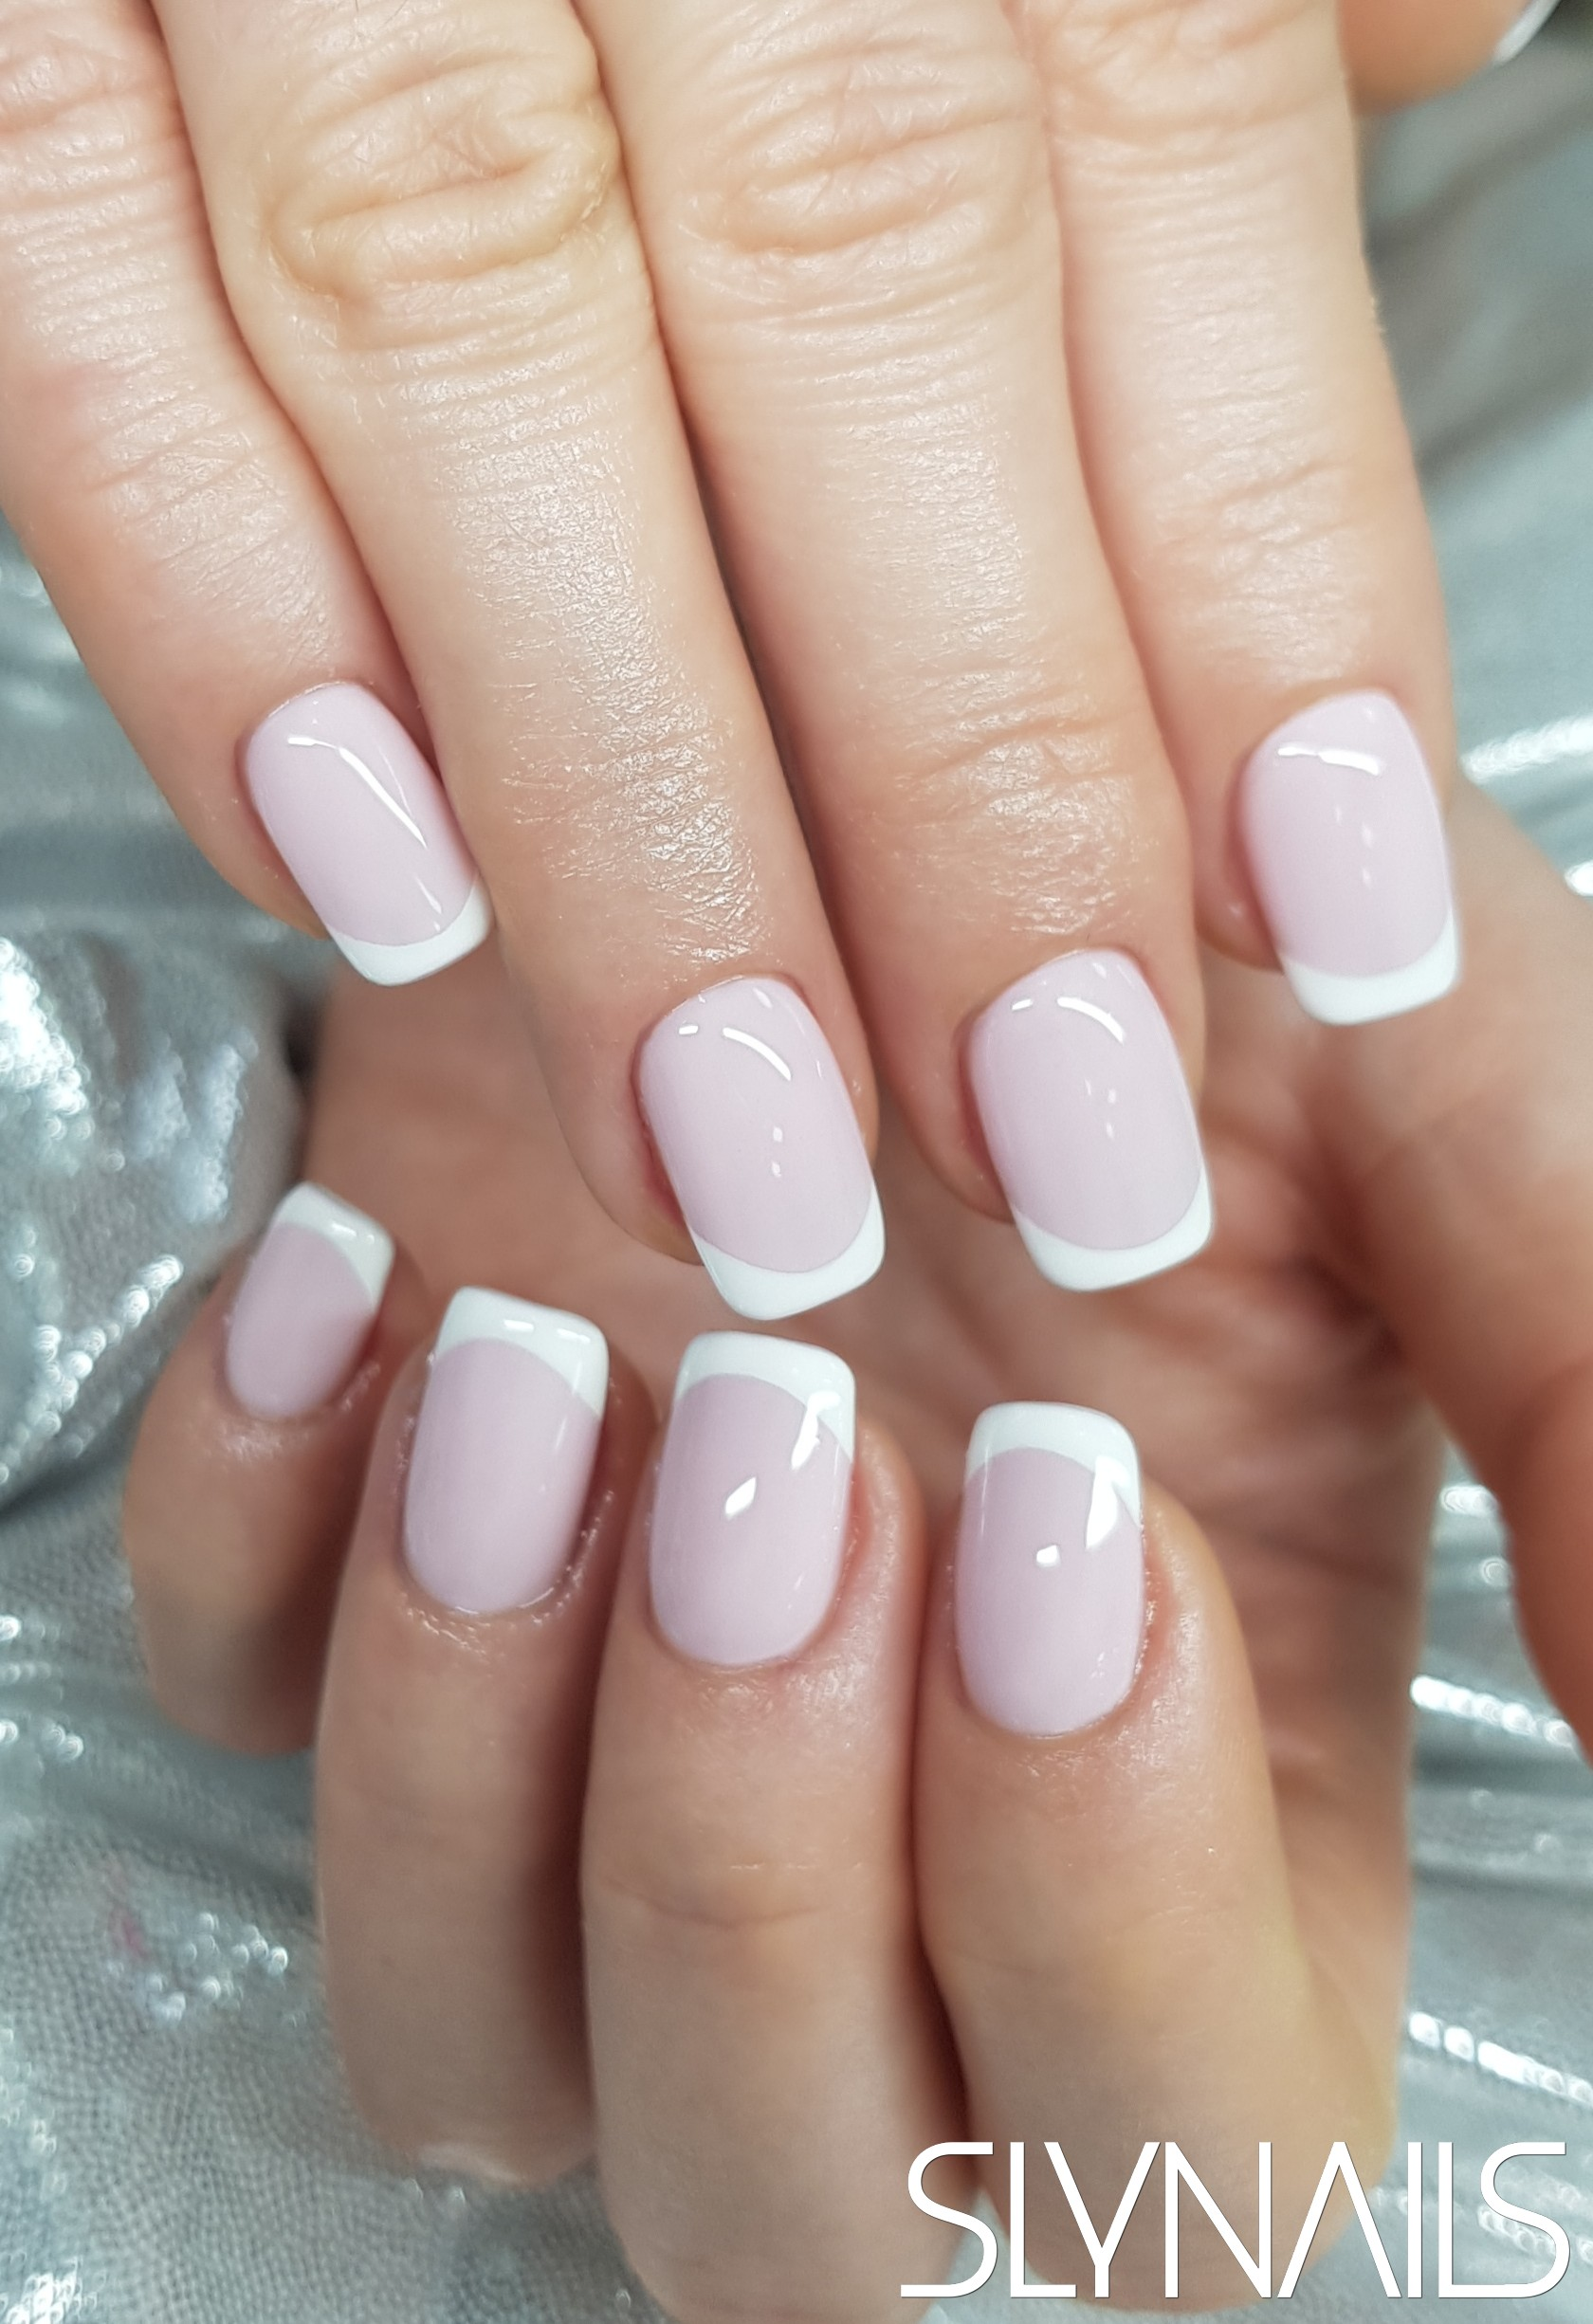 Gel-lac (gel polish), French, White, Pink, Square, Without decoration